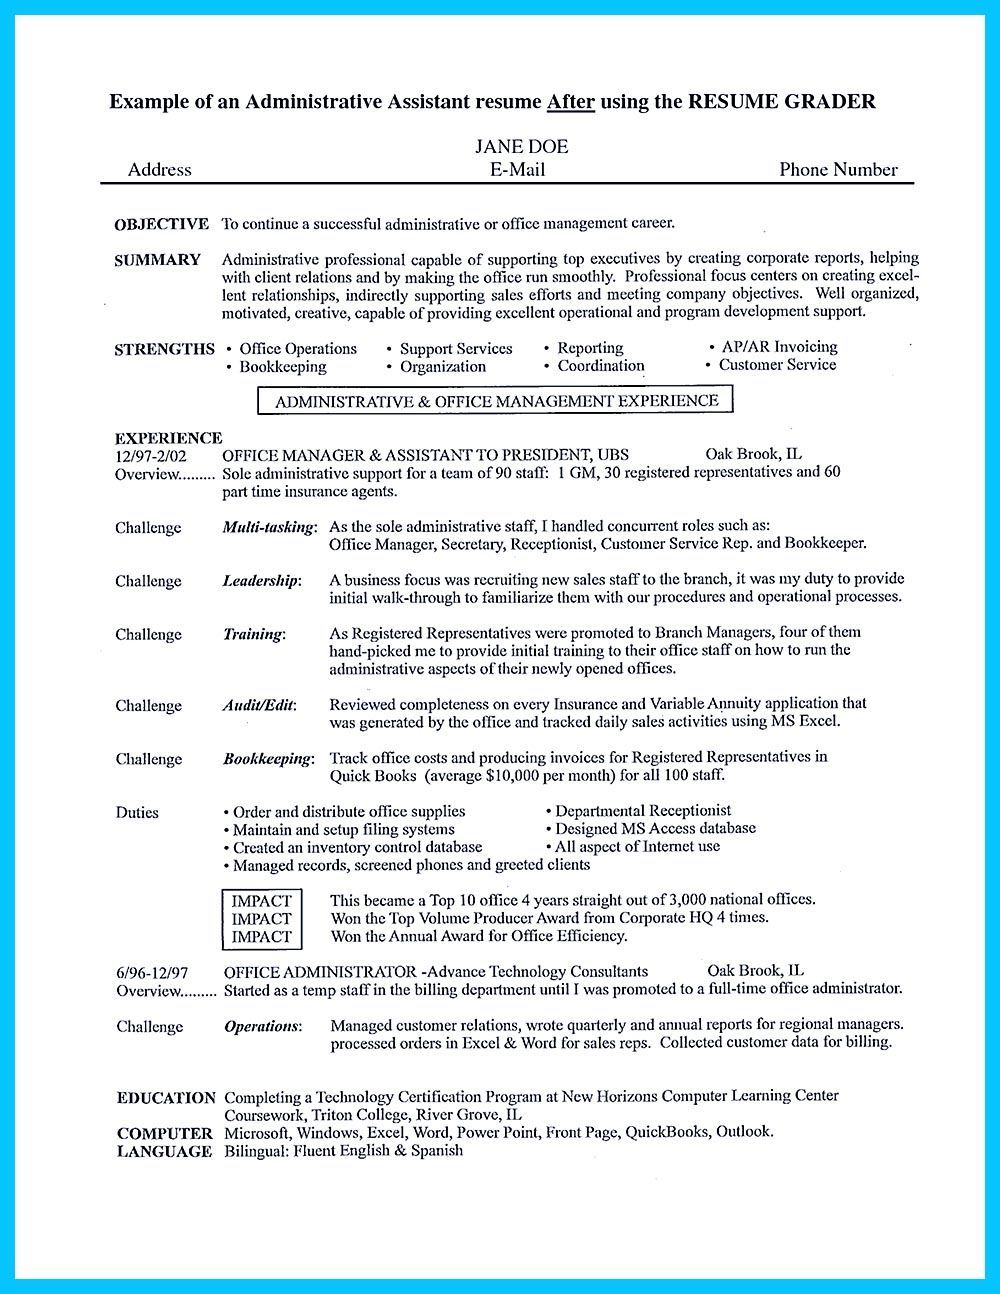 Audit Associate Resume Awesome In Writing Entry Level Administrative Assistant Resume You Need To .